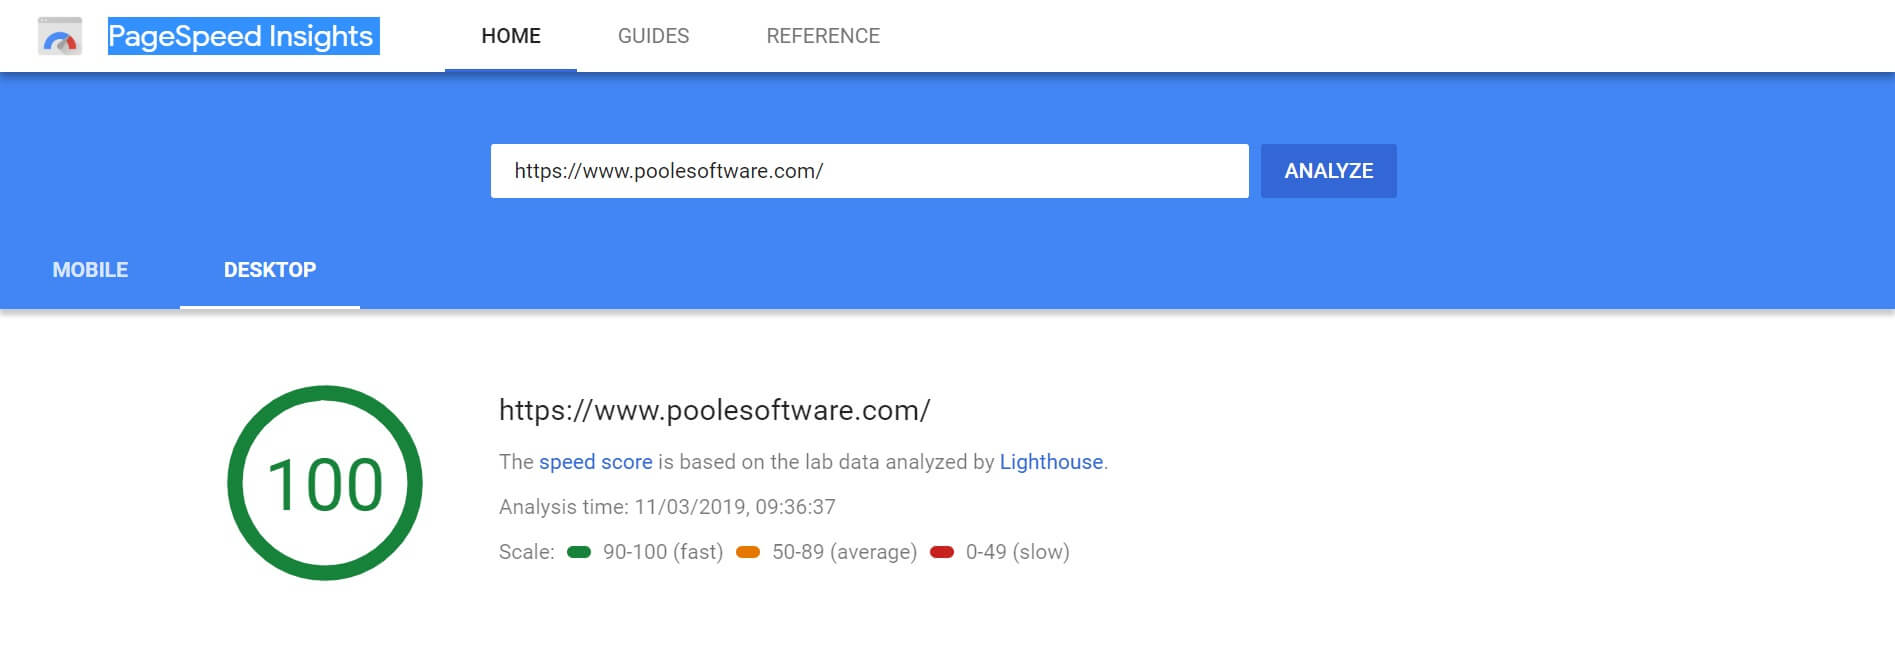 100% in the Google PageSpeed Insights Image